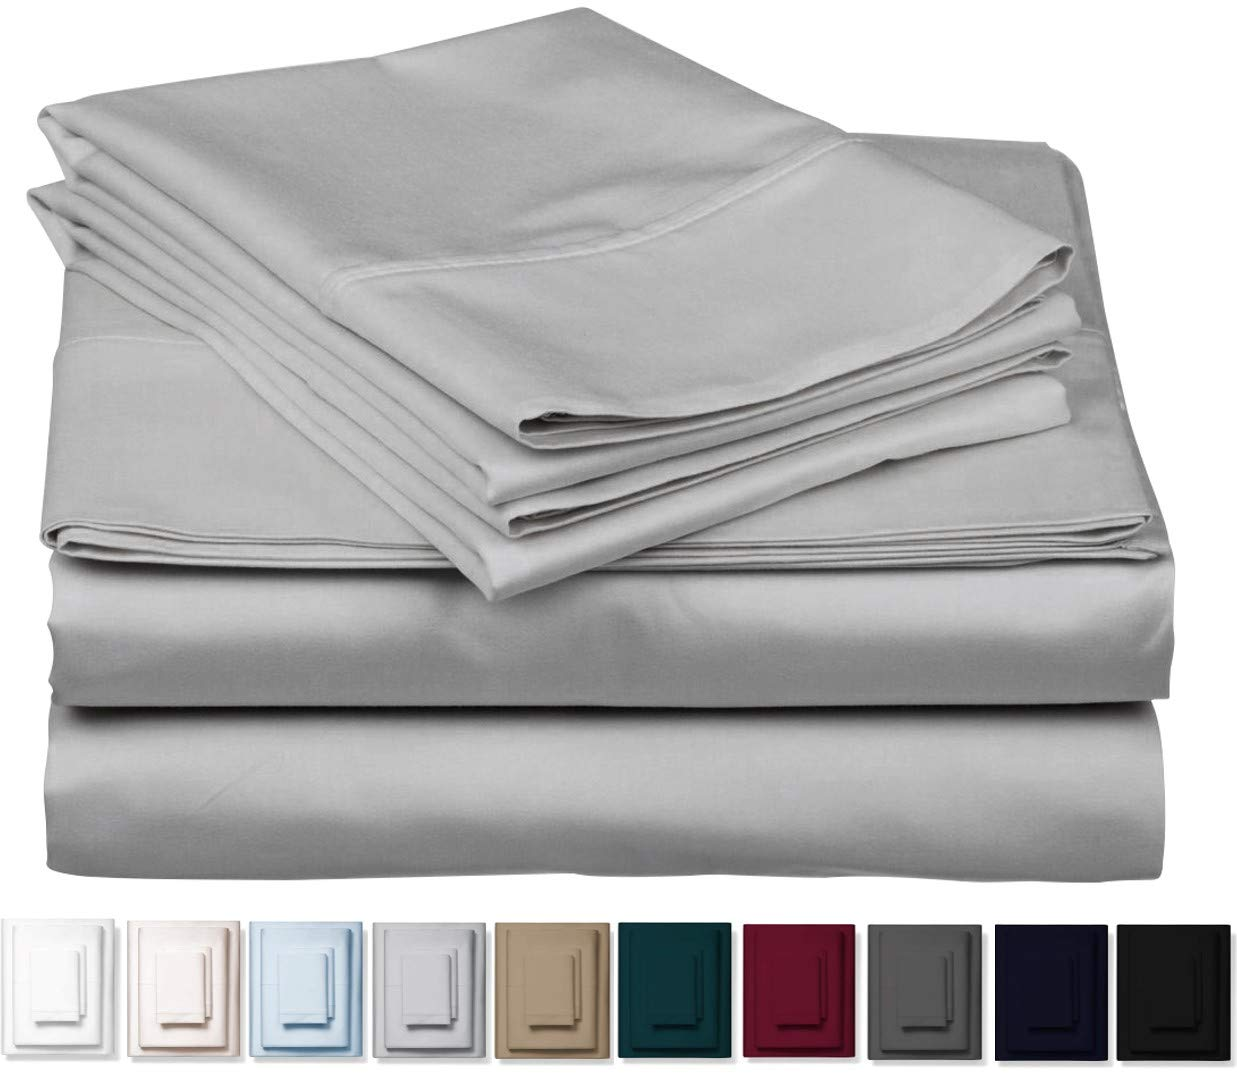 Kemberly Home Collection 1000 Thread Count 100% Pure Egyptian Cotton - Sateen Weave Premium Bed Sheets, 4 -Piece Silver Queen-Size Luxury Sheet Set, Fits Mattress Upto 18'' deep Pocket